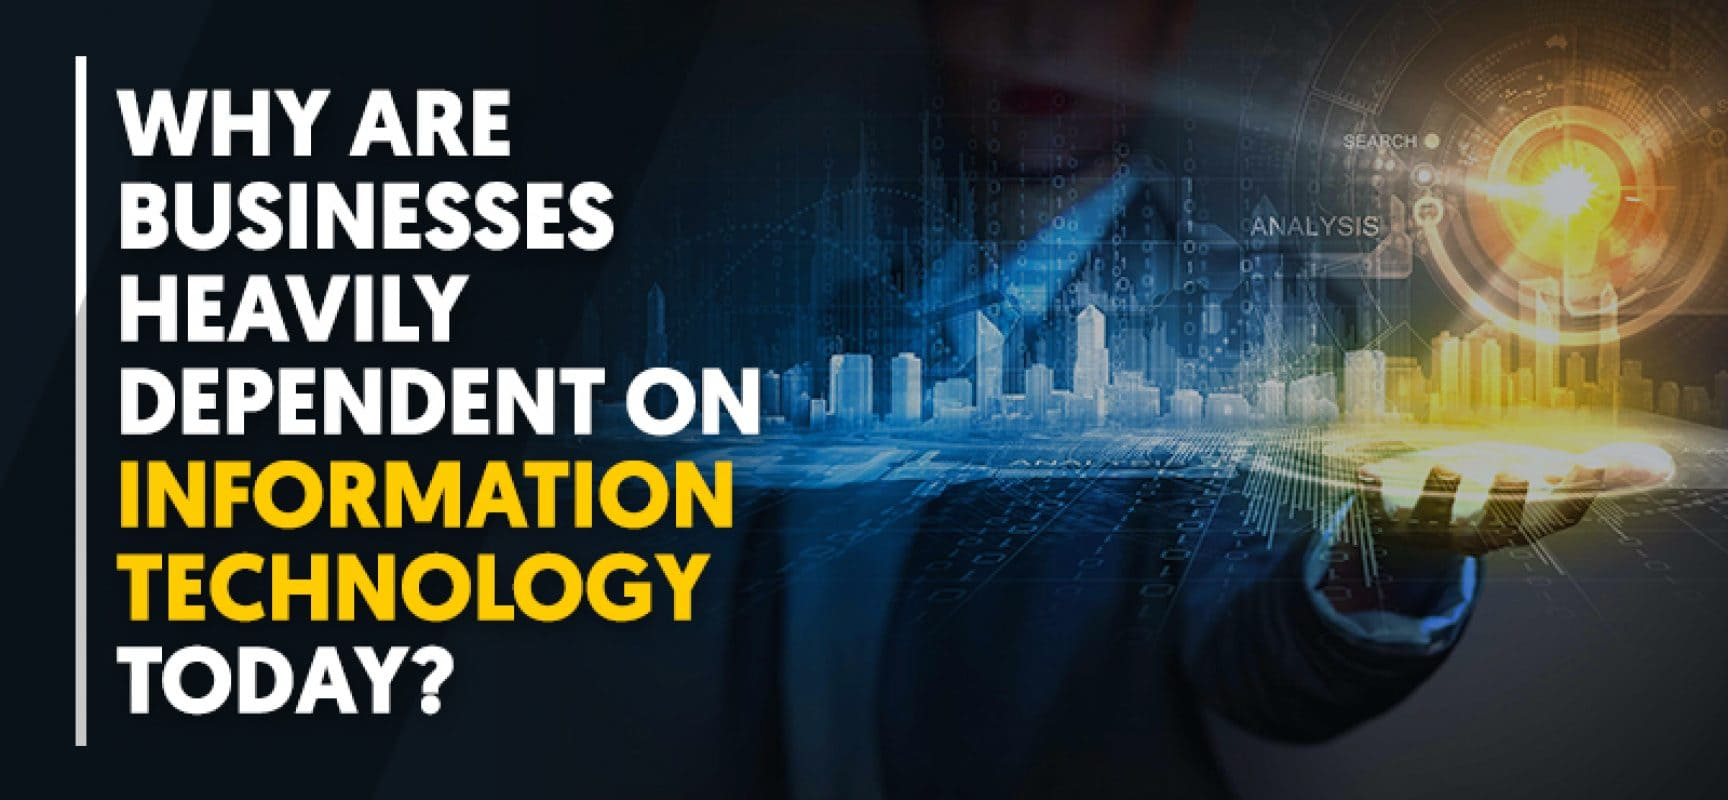 Why are businesses heavily dependent on Information Technology today?